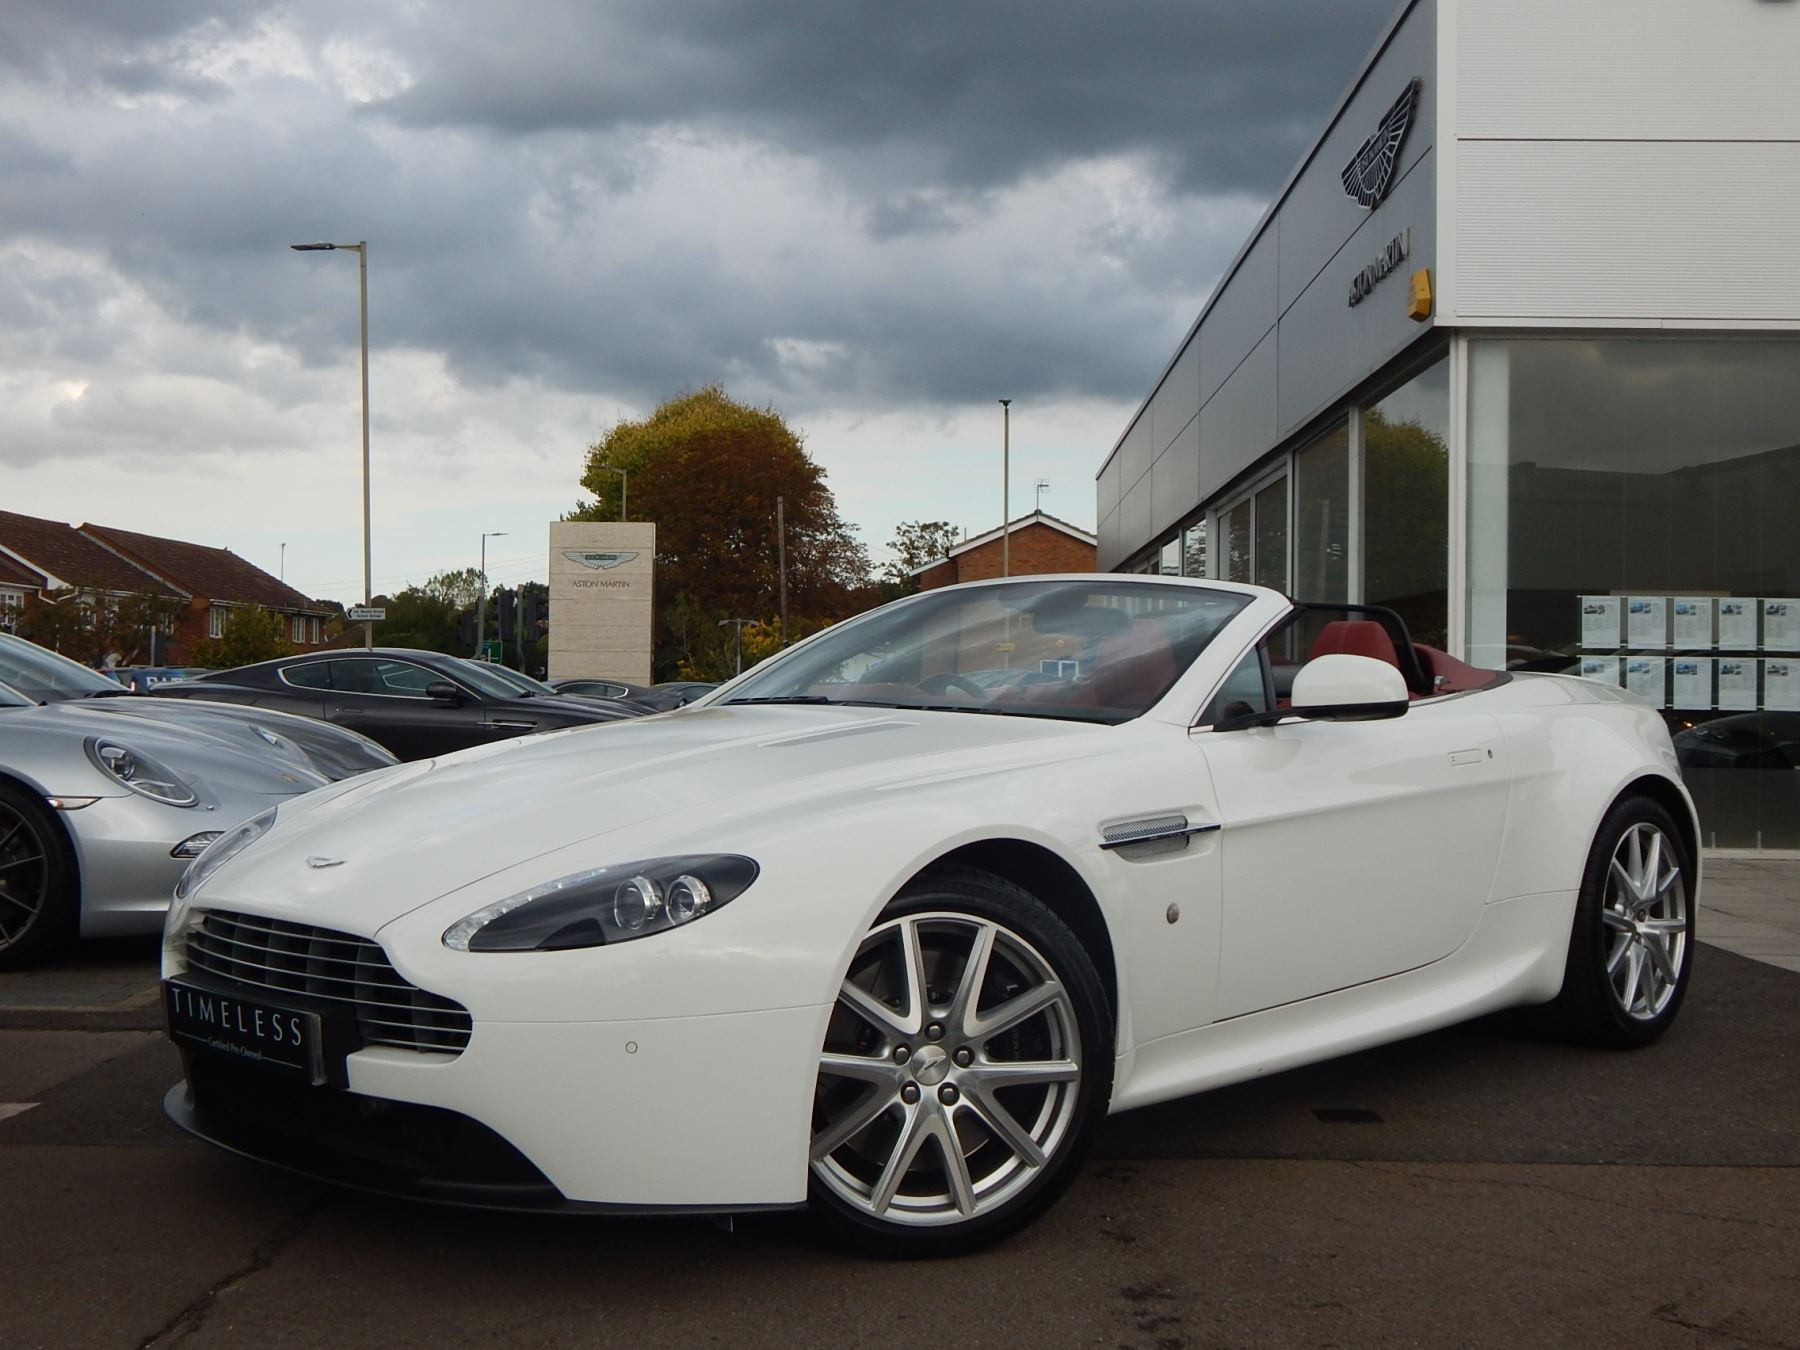 Aston Martin V8 Vantage Roadster Roadster 4.7 Sports Shift 2 door (2014) image